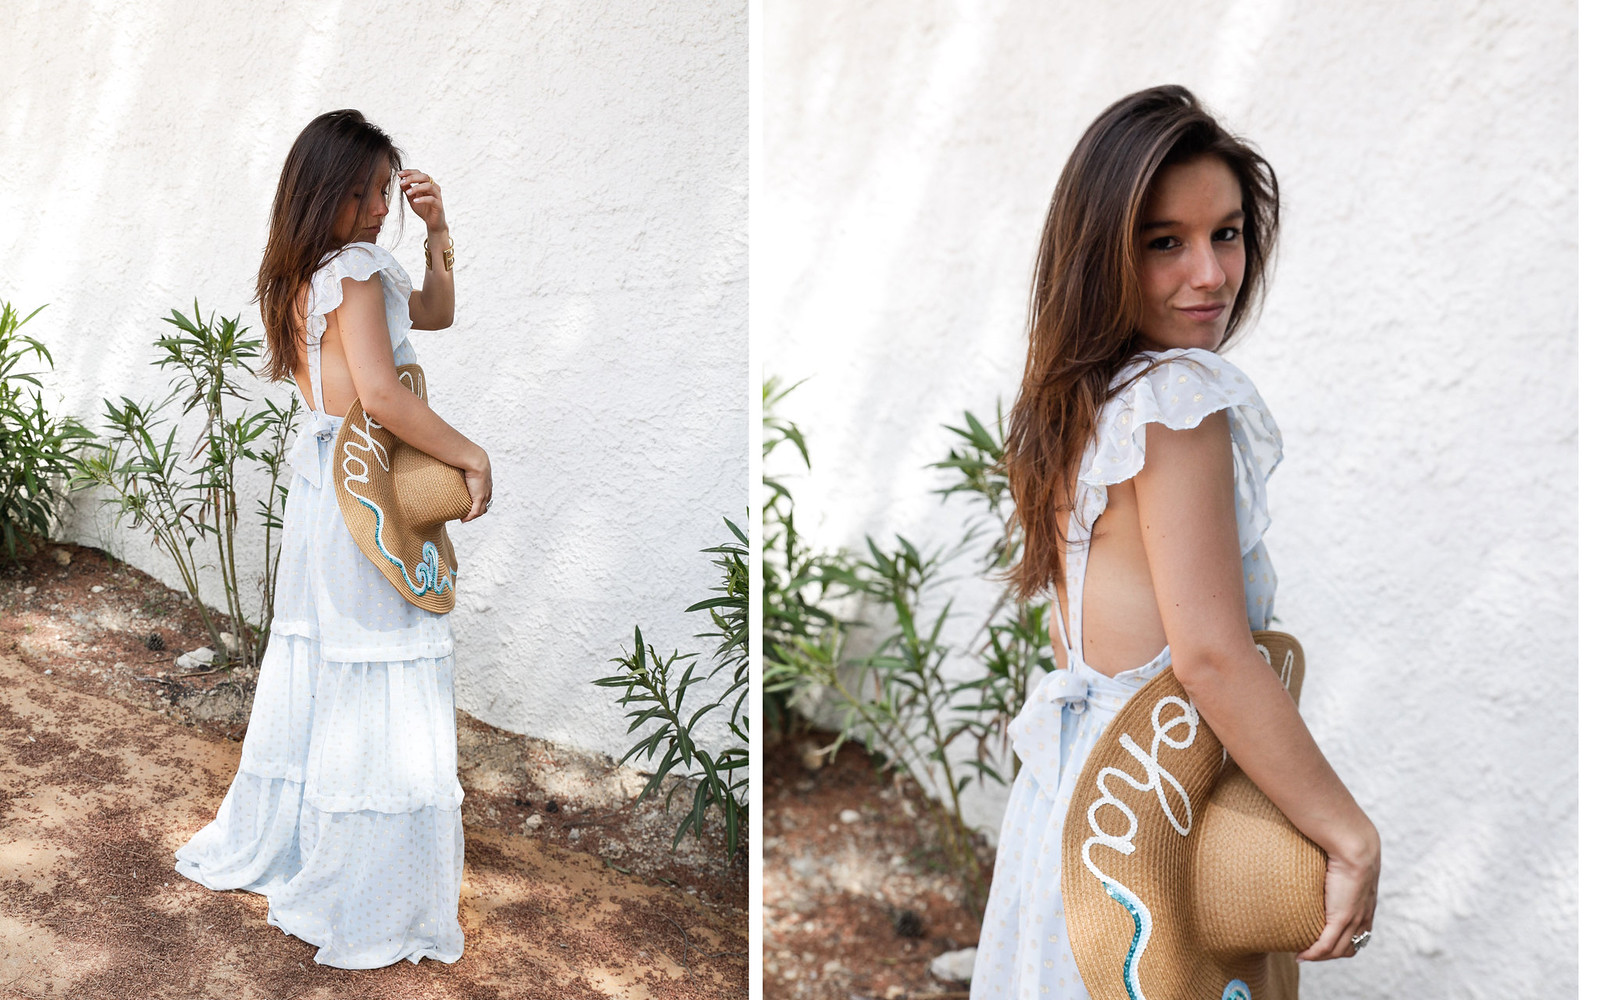 010_golden_dots_lunares_dorados_vestido_azul_boho_deby_debo_long_dress_theguestgirl_influencer_barcelona_style_content_creator_fashion_spain